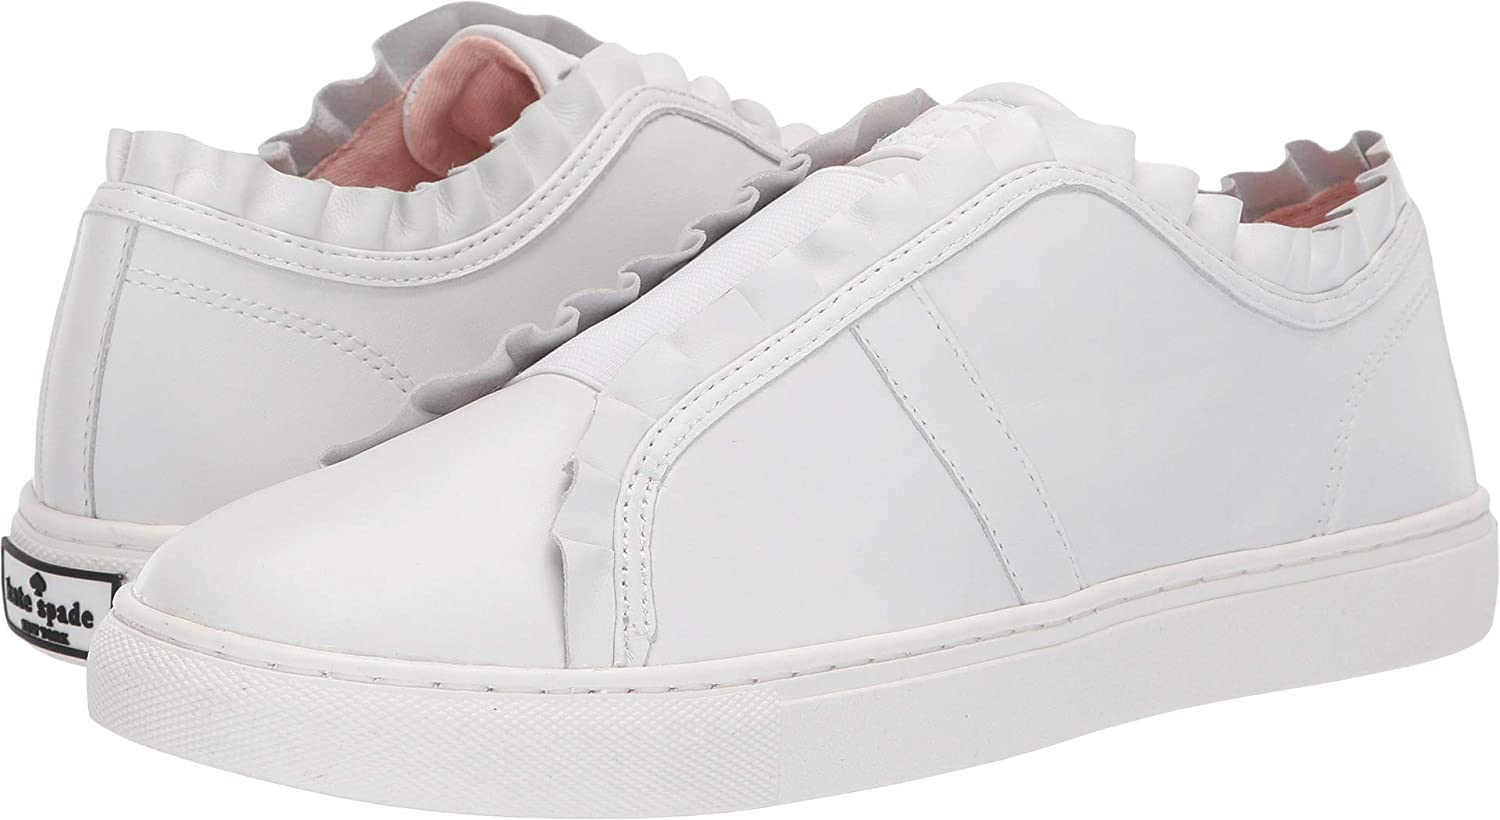 kate spade lilly sneakers canada